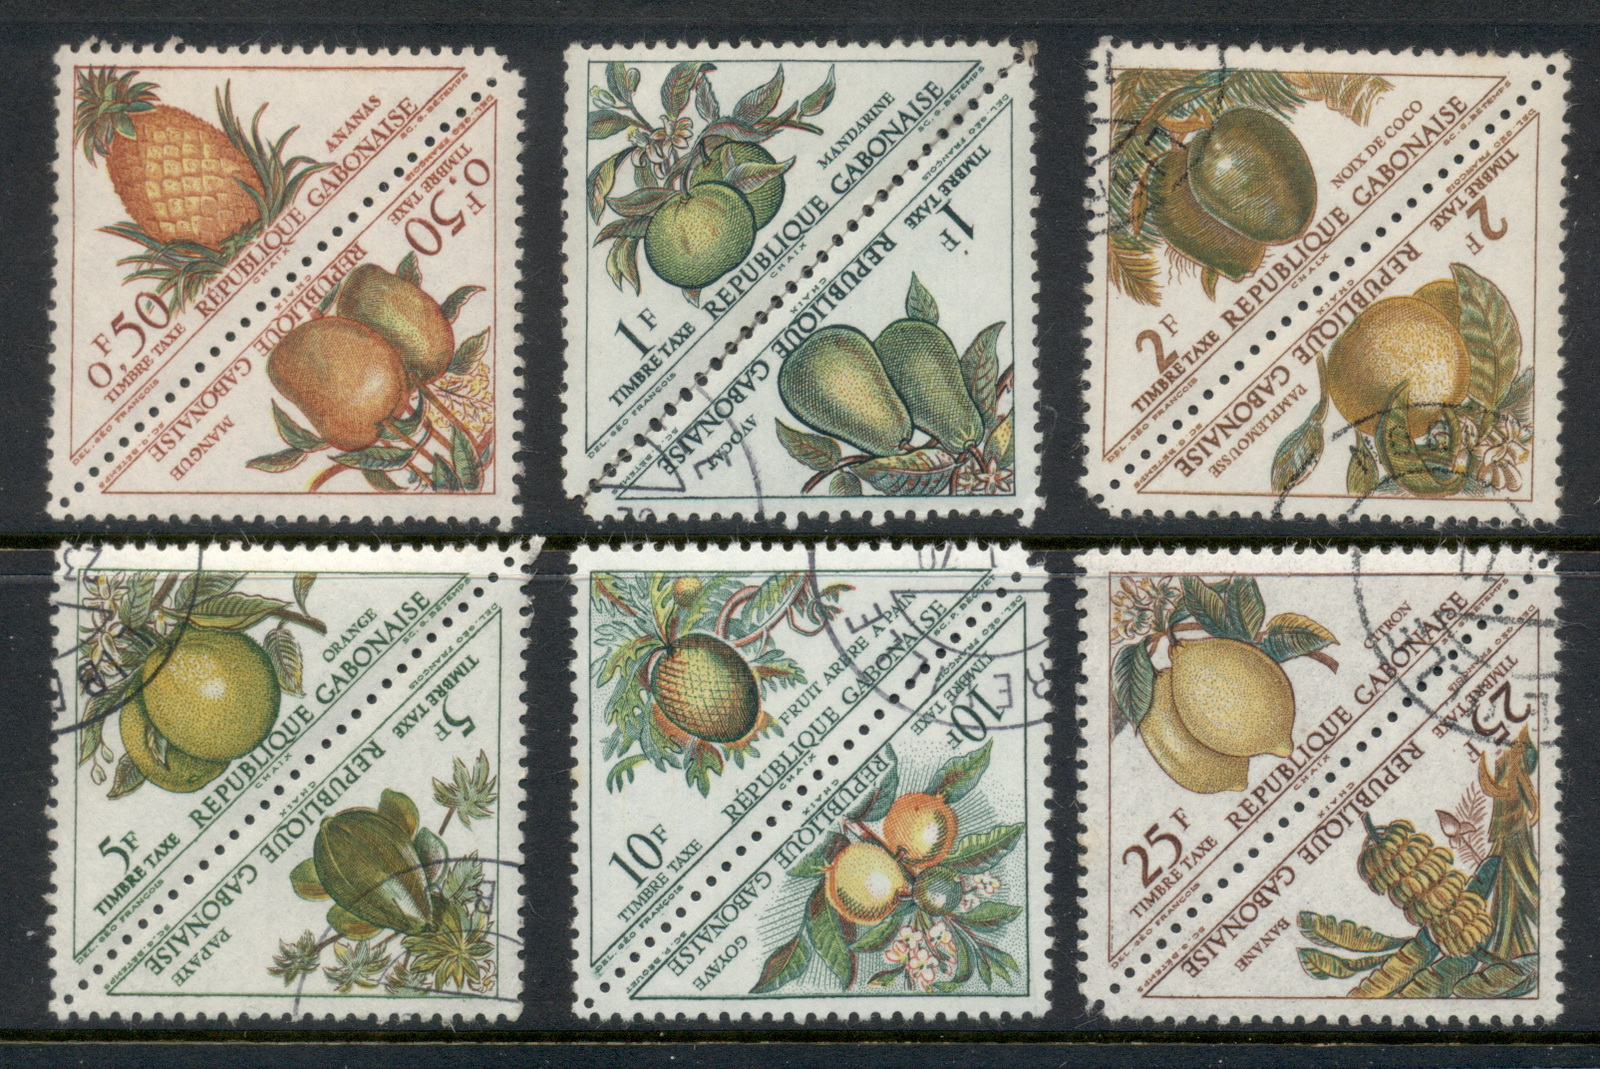 Gabon 1962 Postage Dues, Fruits MLH/CTO